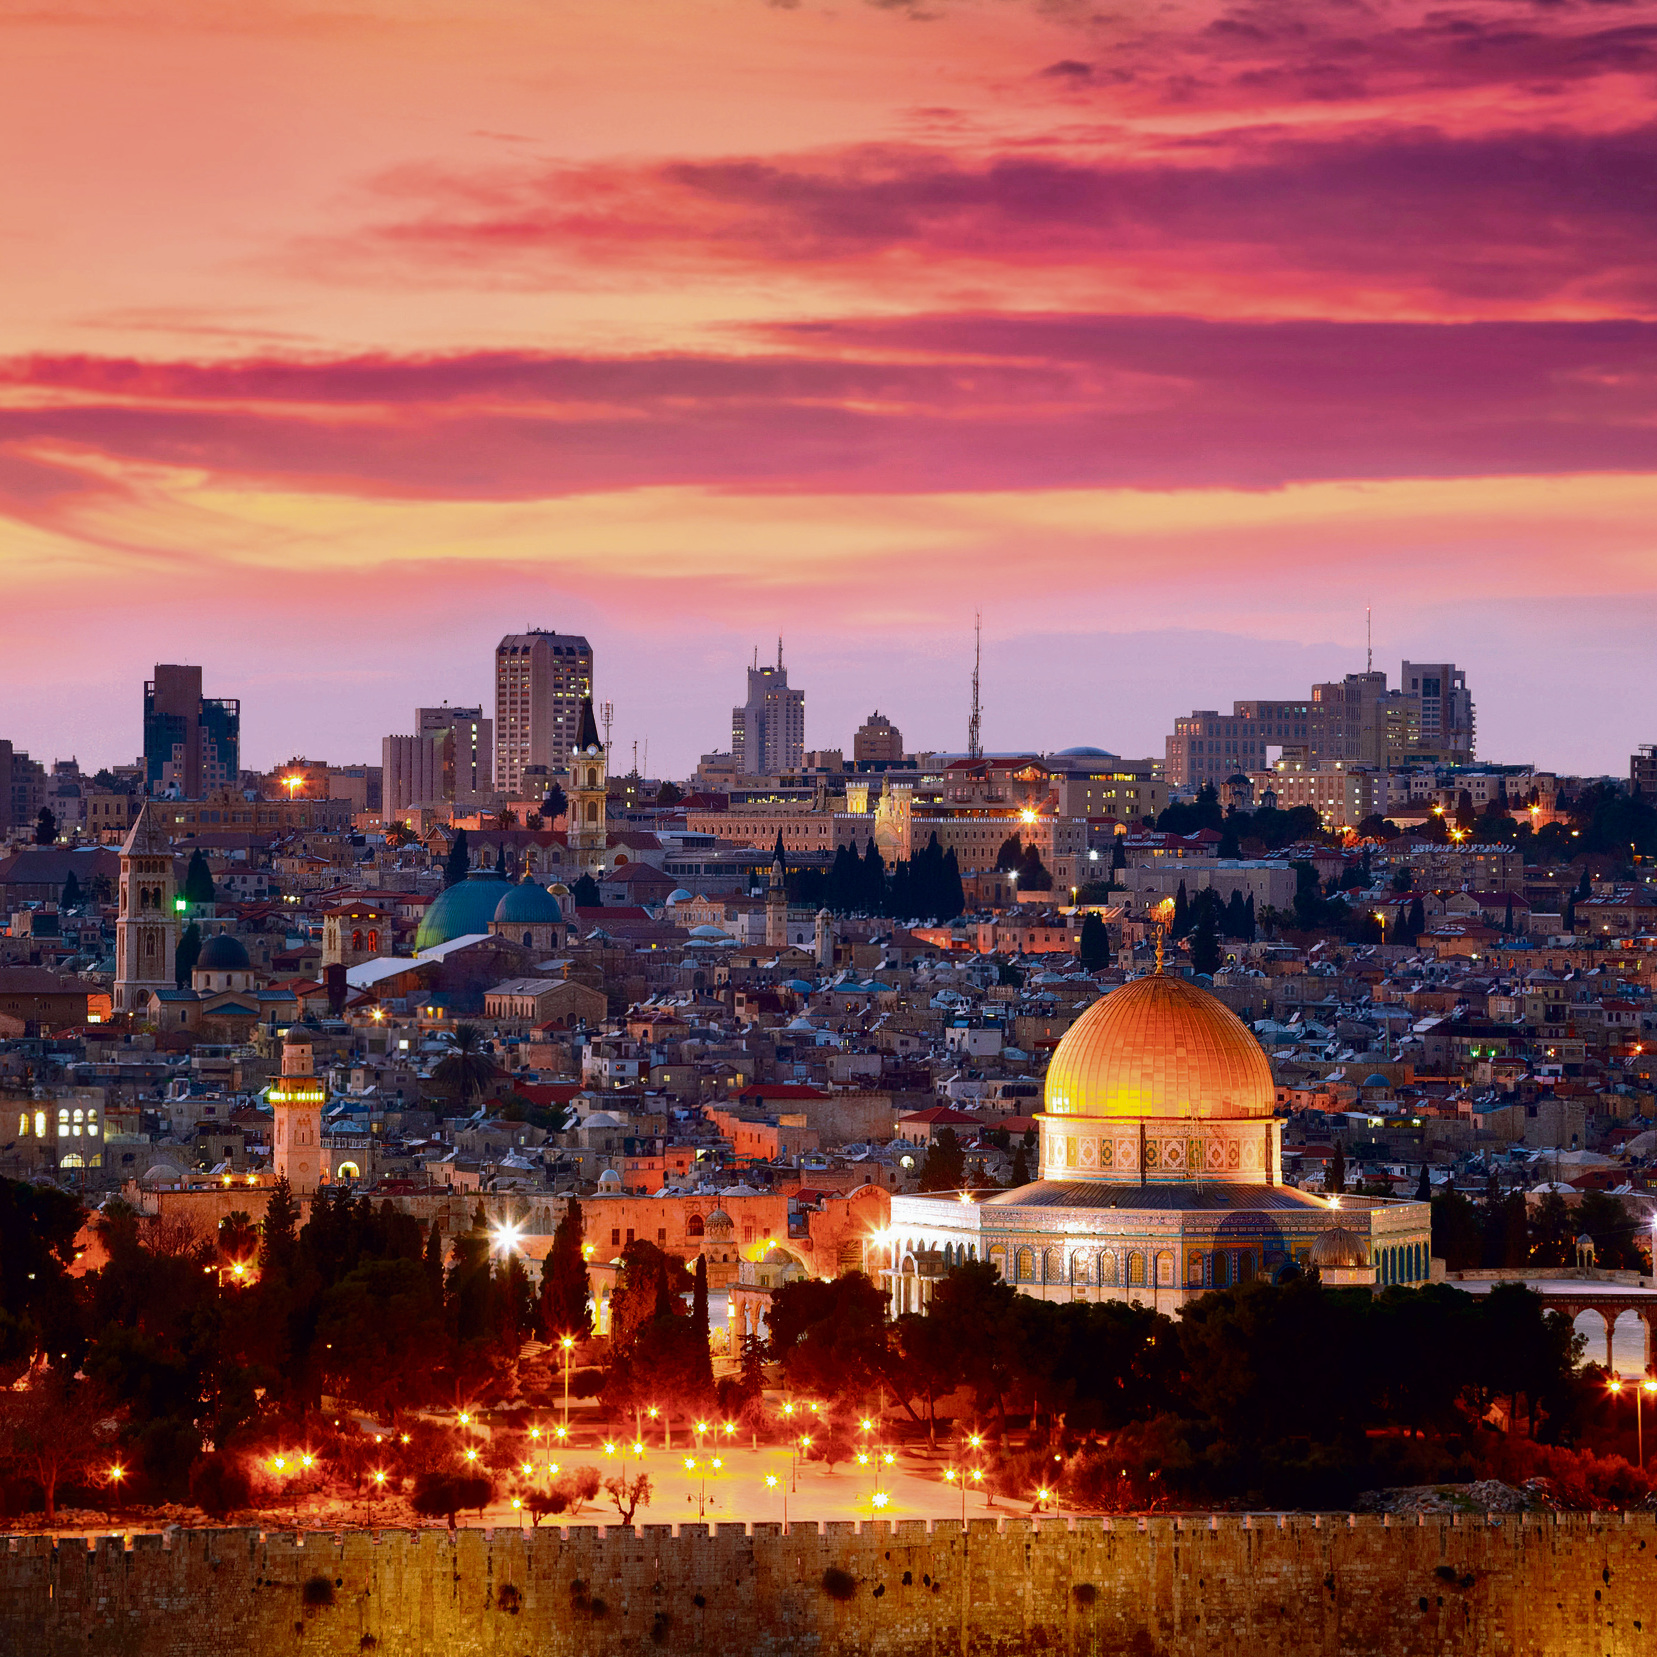 Jerusalem. Joy and anticipation, serenity and hope